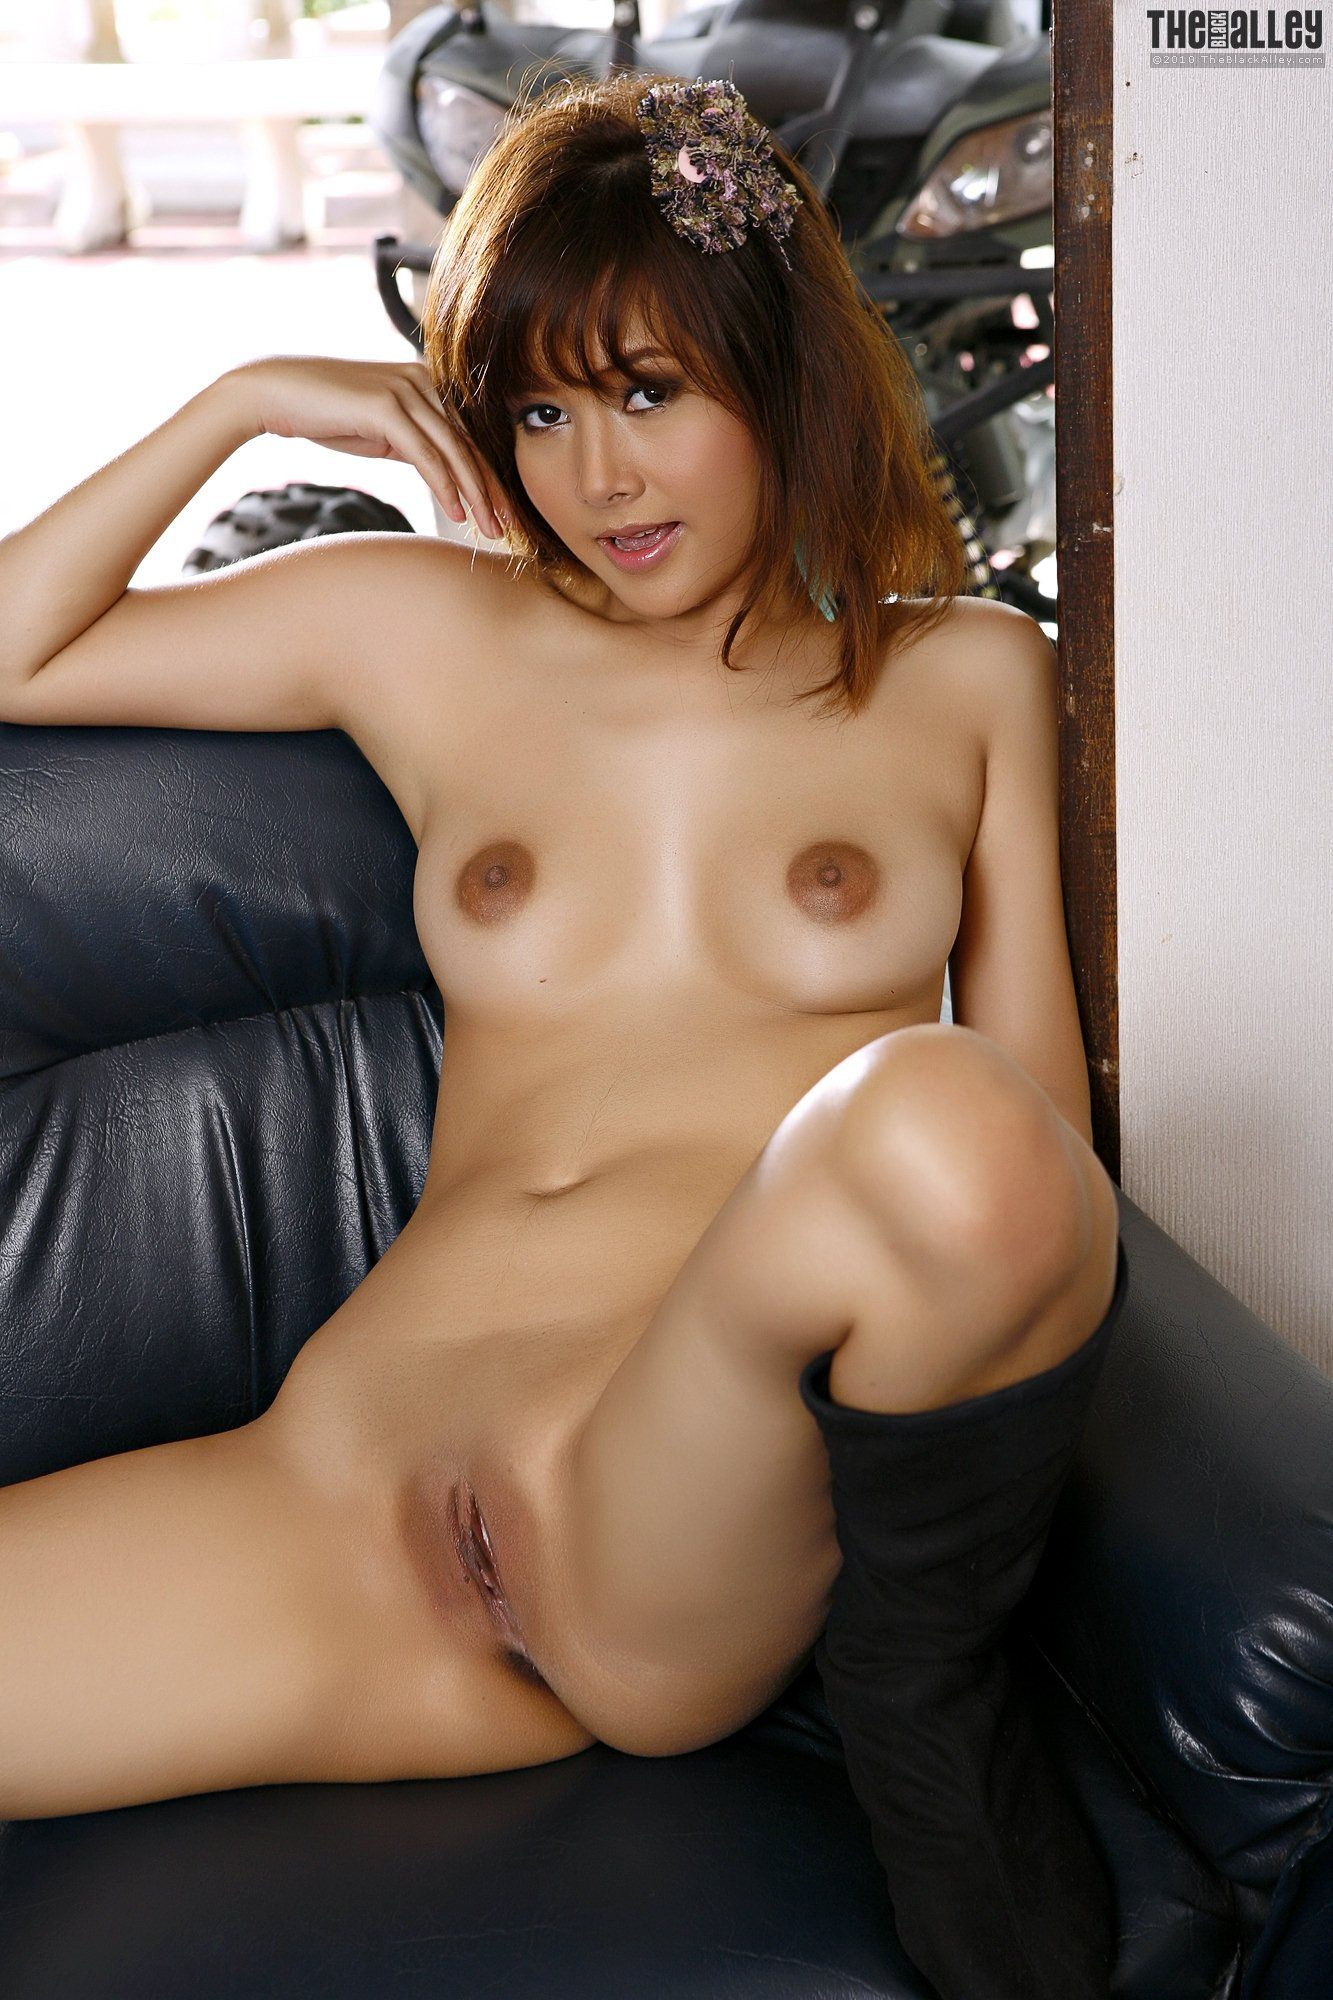 Nude Photo HQ Asian gallery post thumbnail